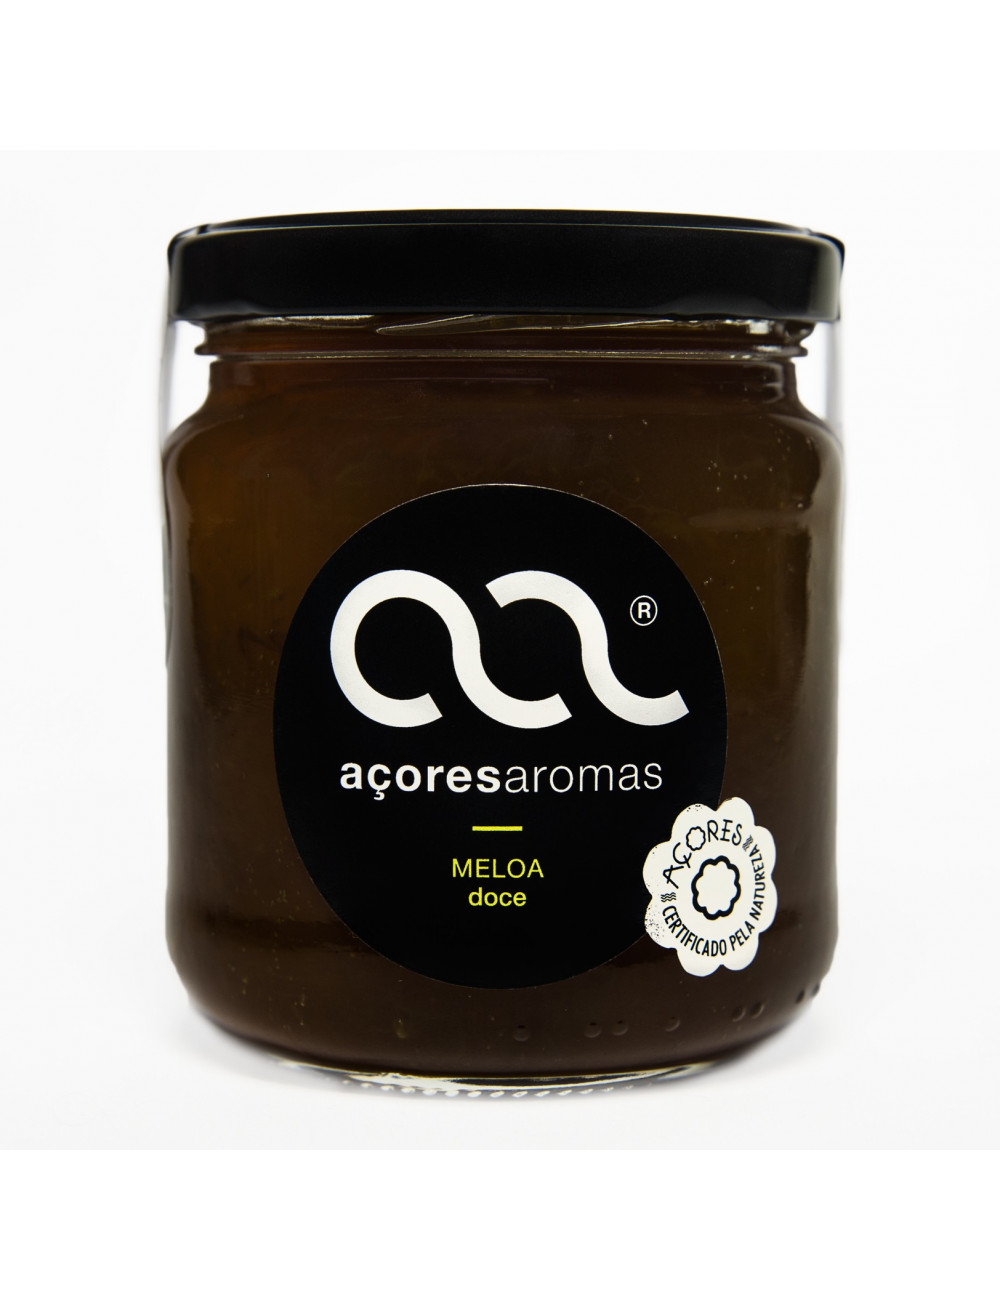 Cantaloupe Jam Acores Aromas Preserve cantaloupe with this interesting and different jam. made in azores